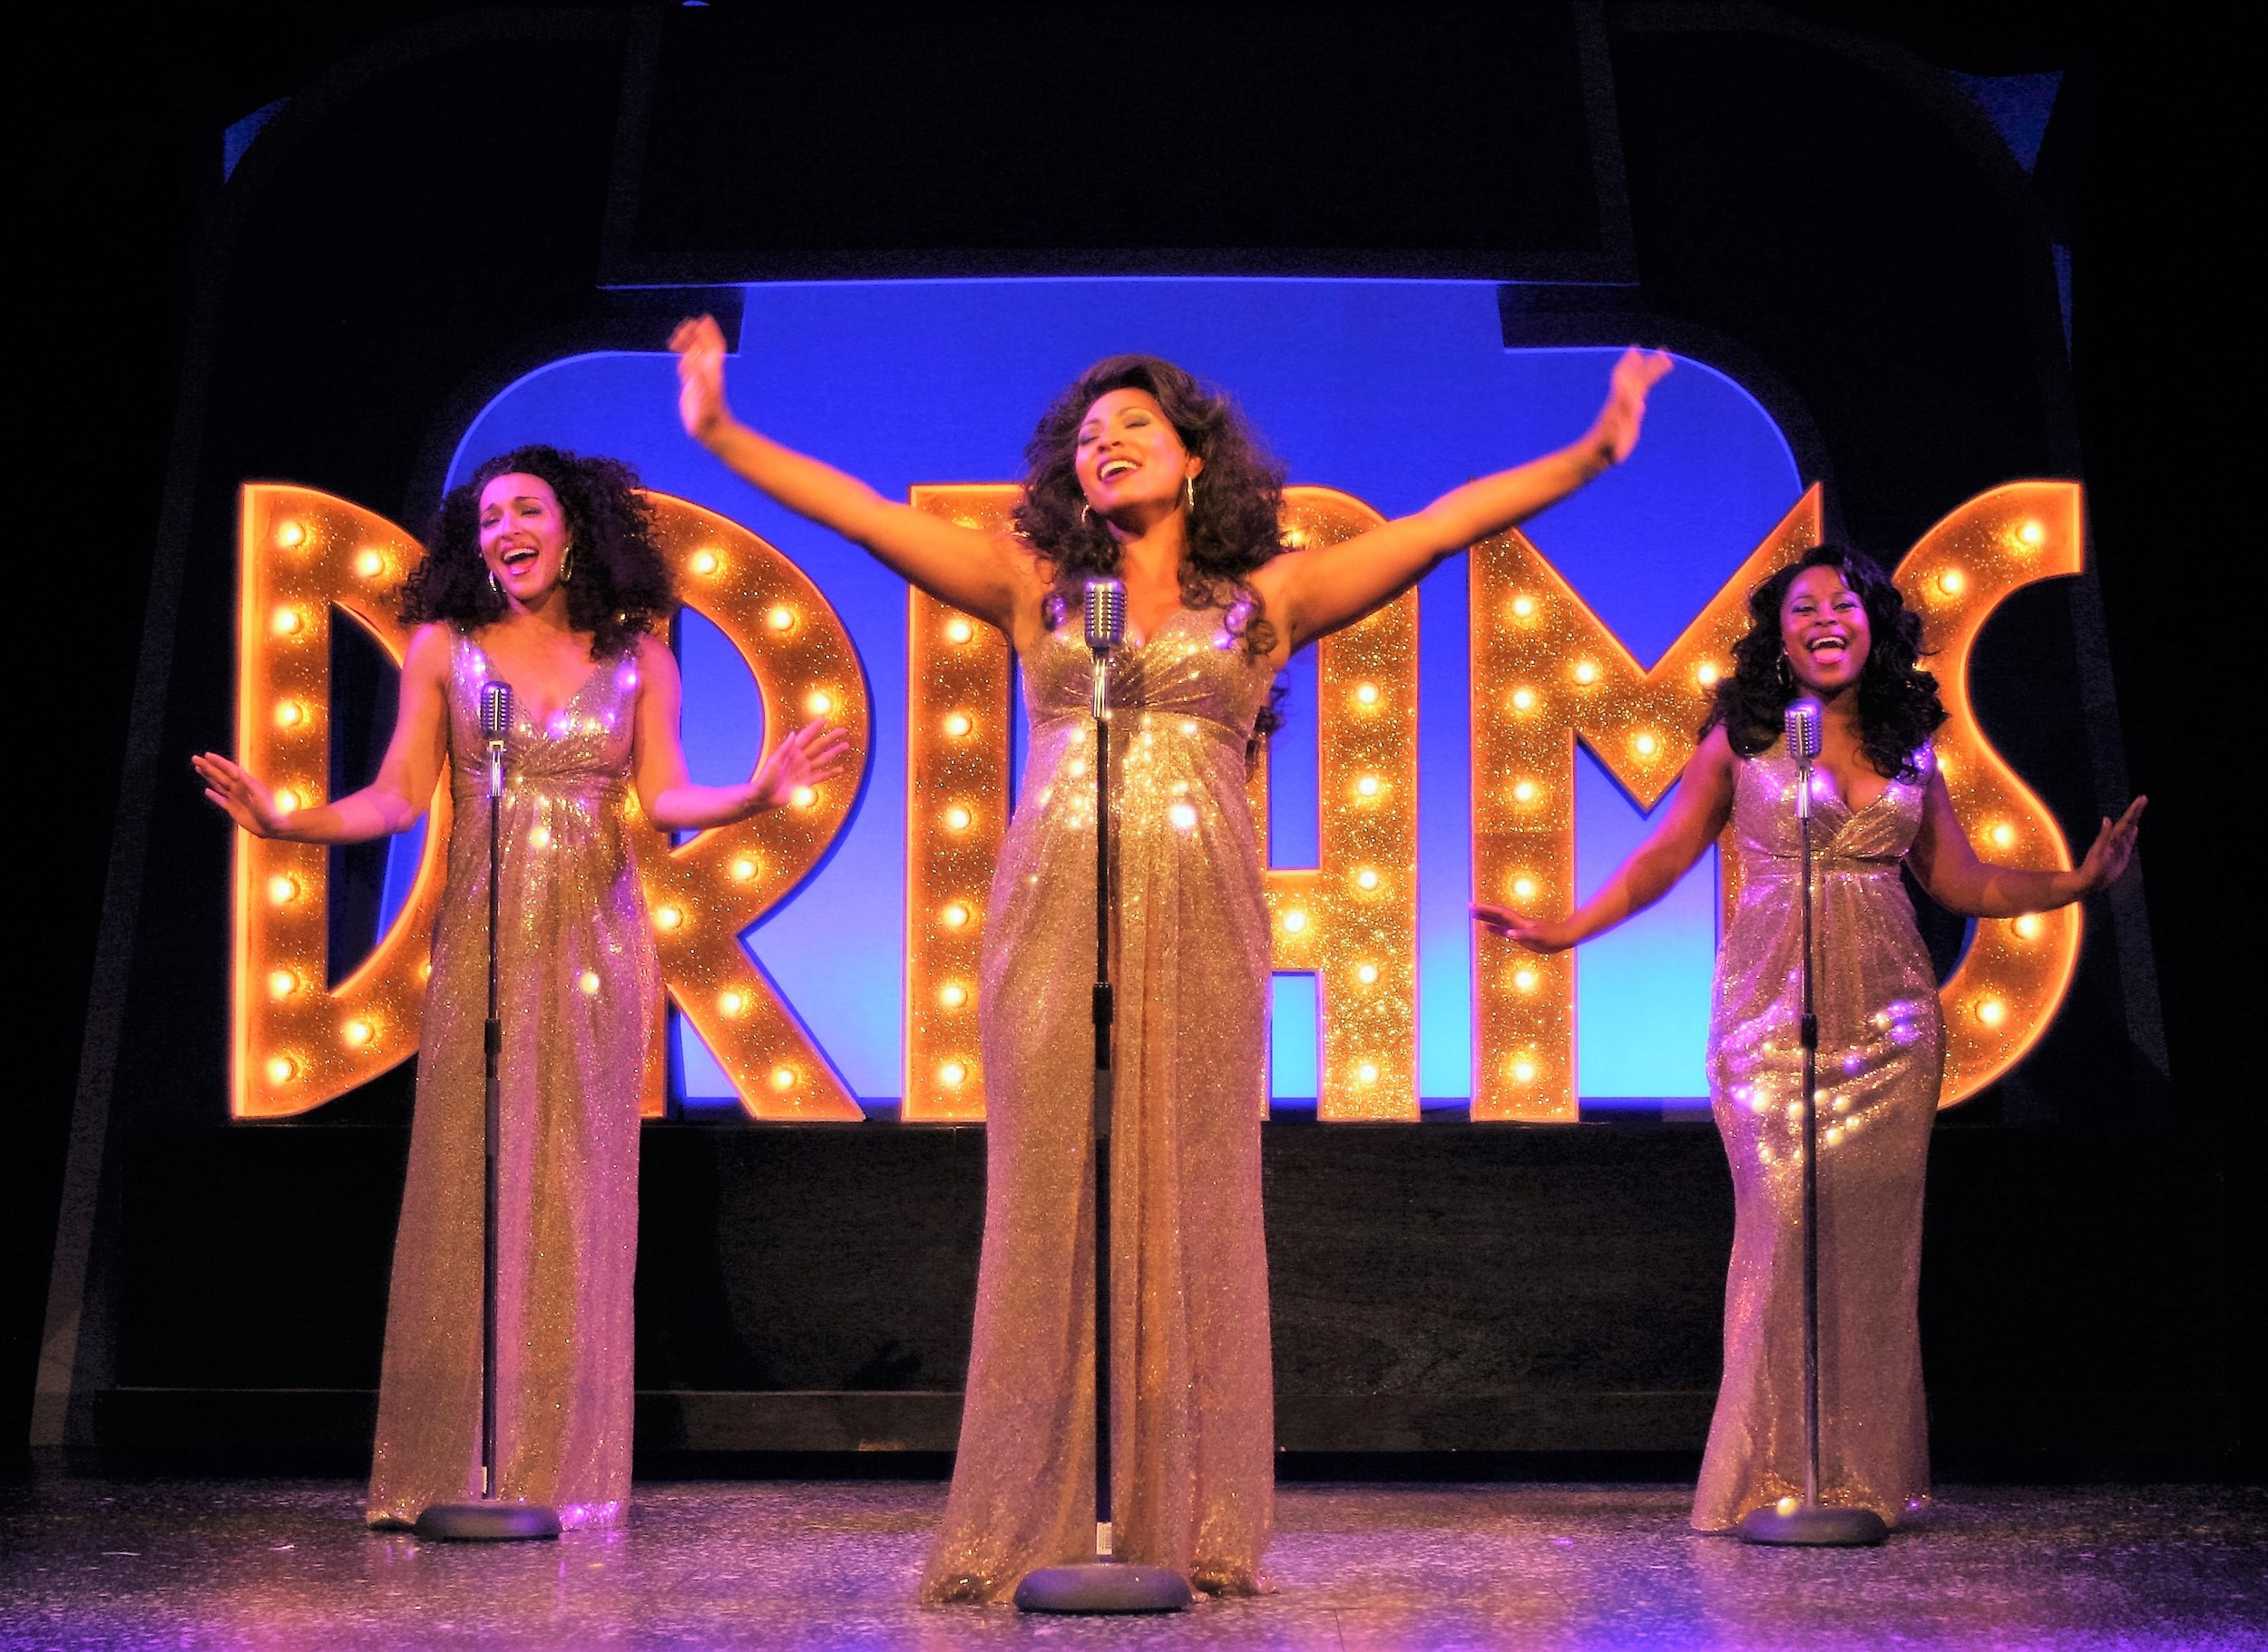 """Dreamgirls"" follows the rise of a Supremes-style singing group of the 1960s."